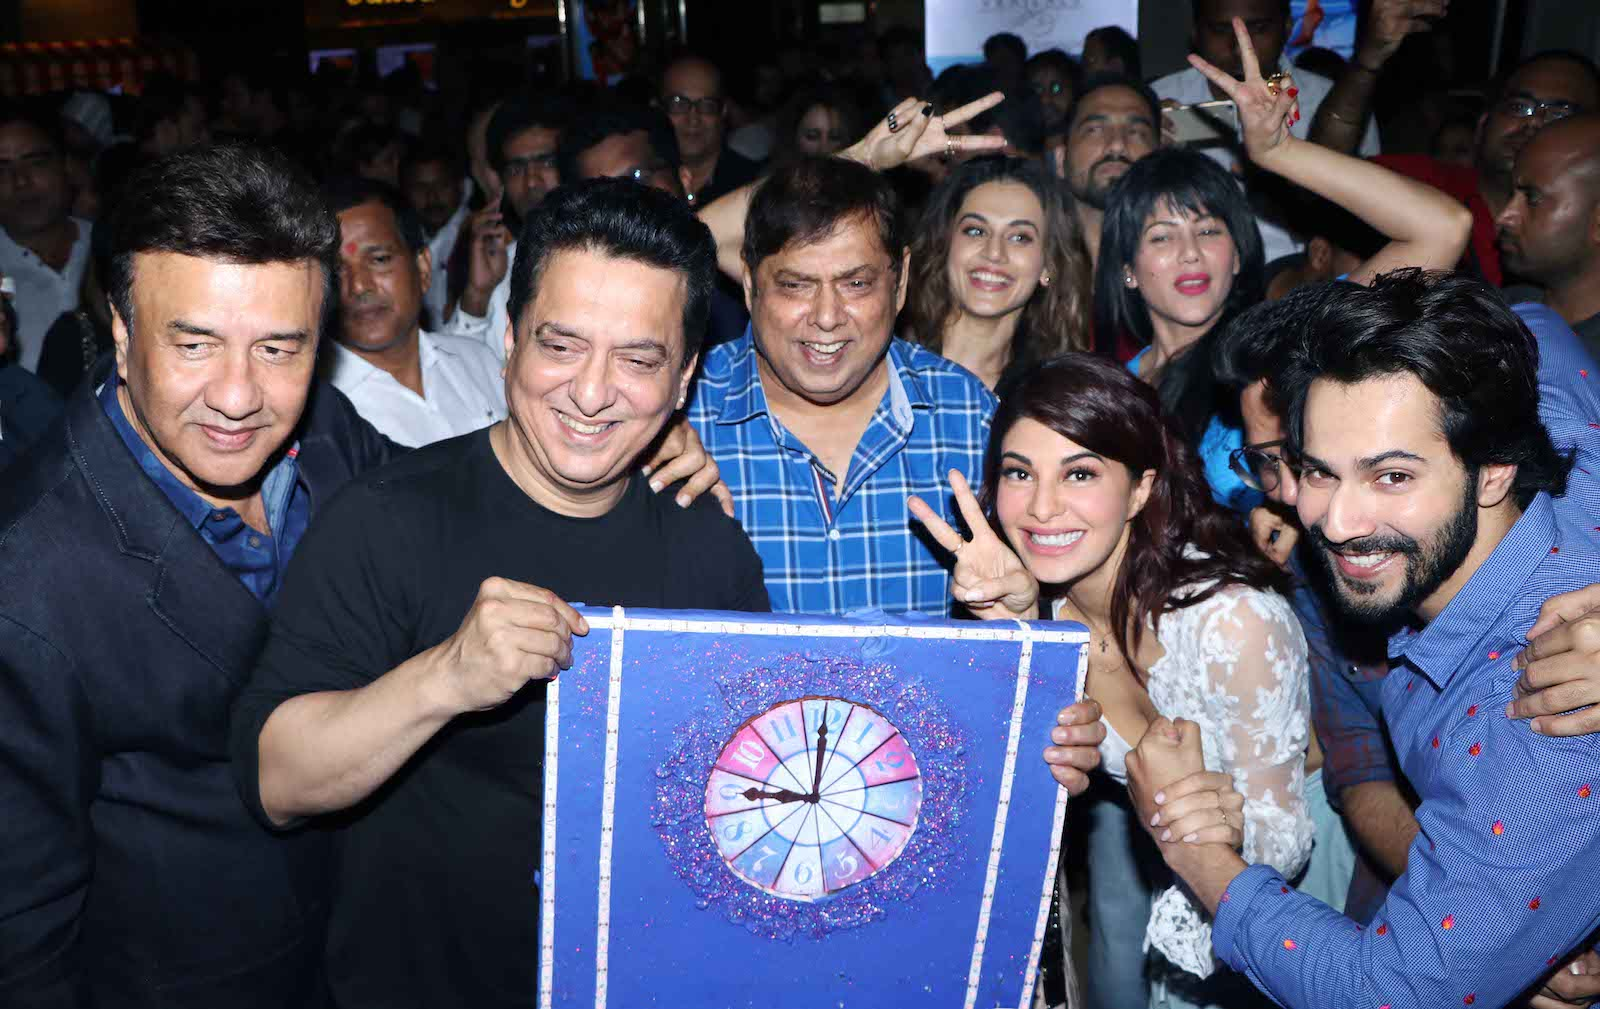 Sajid Nadiadwala with Varun Dhawan, Jacqueline Fernandez, Taapsee Pannu and director David Dhawan at Judwaa 2 Premiere night event